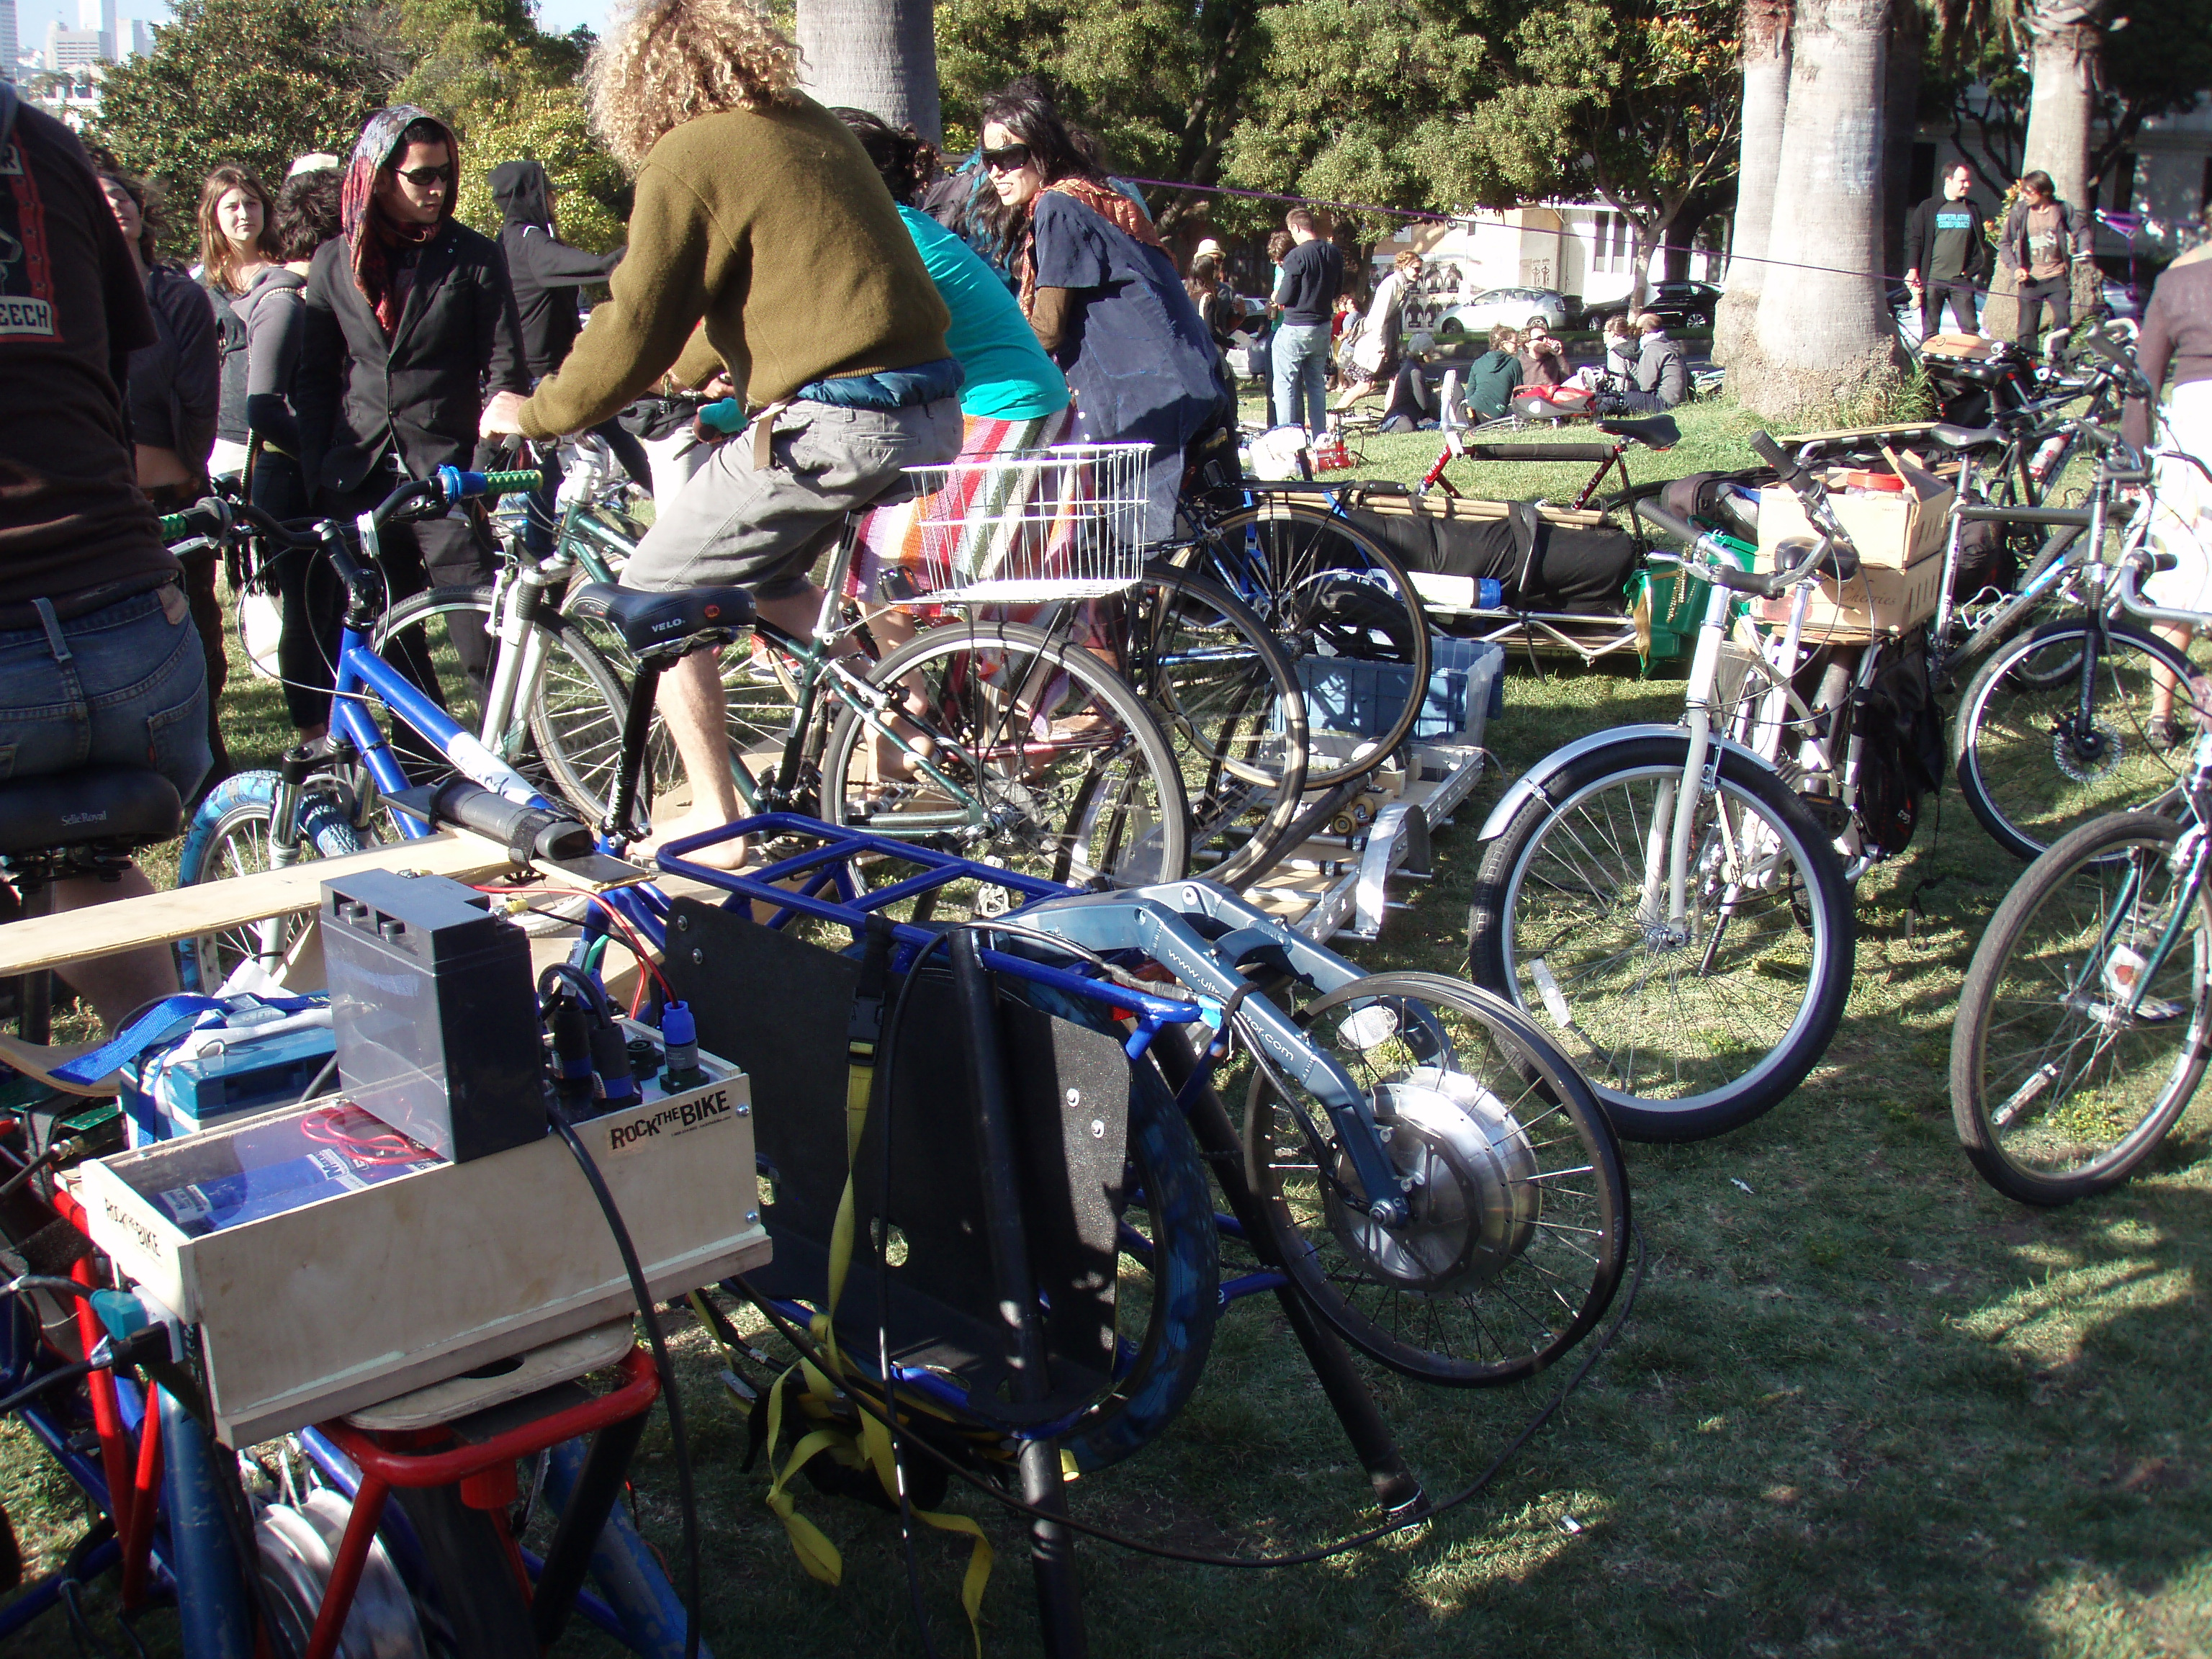 This is the power-generating setup they used.  5 bikes in total, the three far bikes were all connected to the same unit.